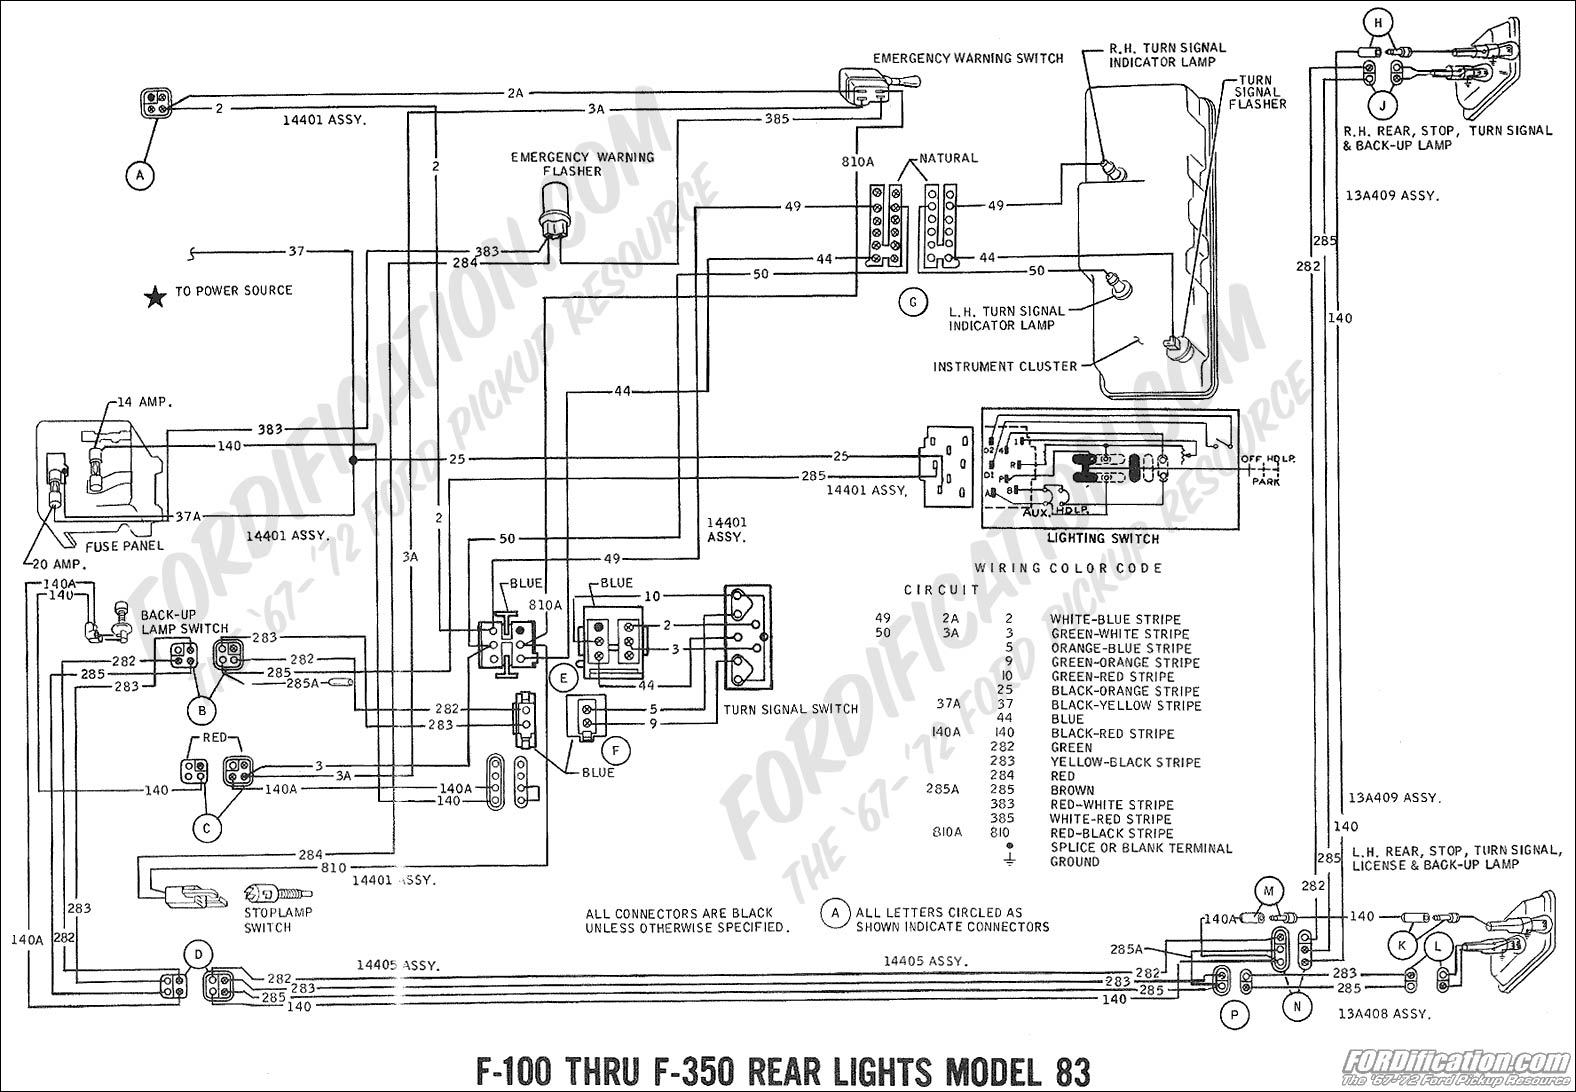 1987 chevy truck wiring diagram 1987 image wiring 1987 chevy truck wiring diagram 1987 discover your wiring on 1987 chevy truck wiring diagram